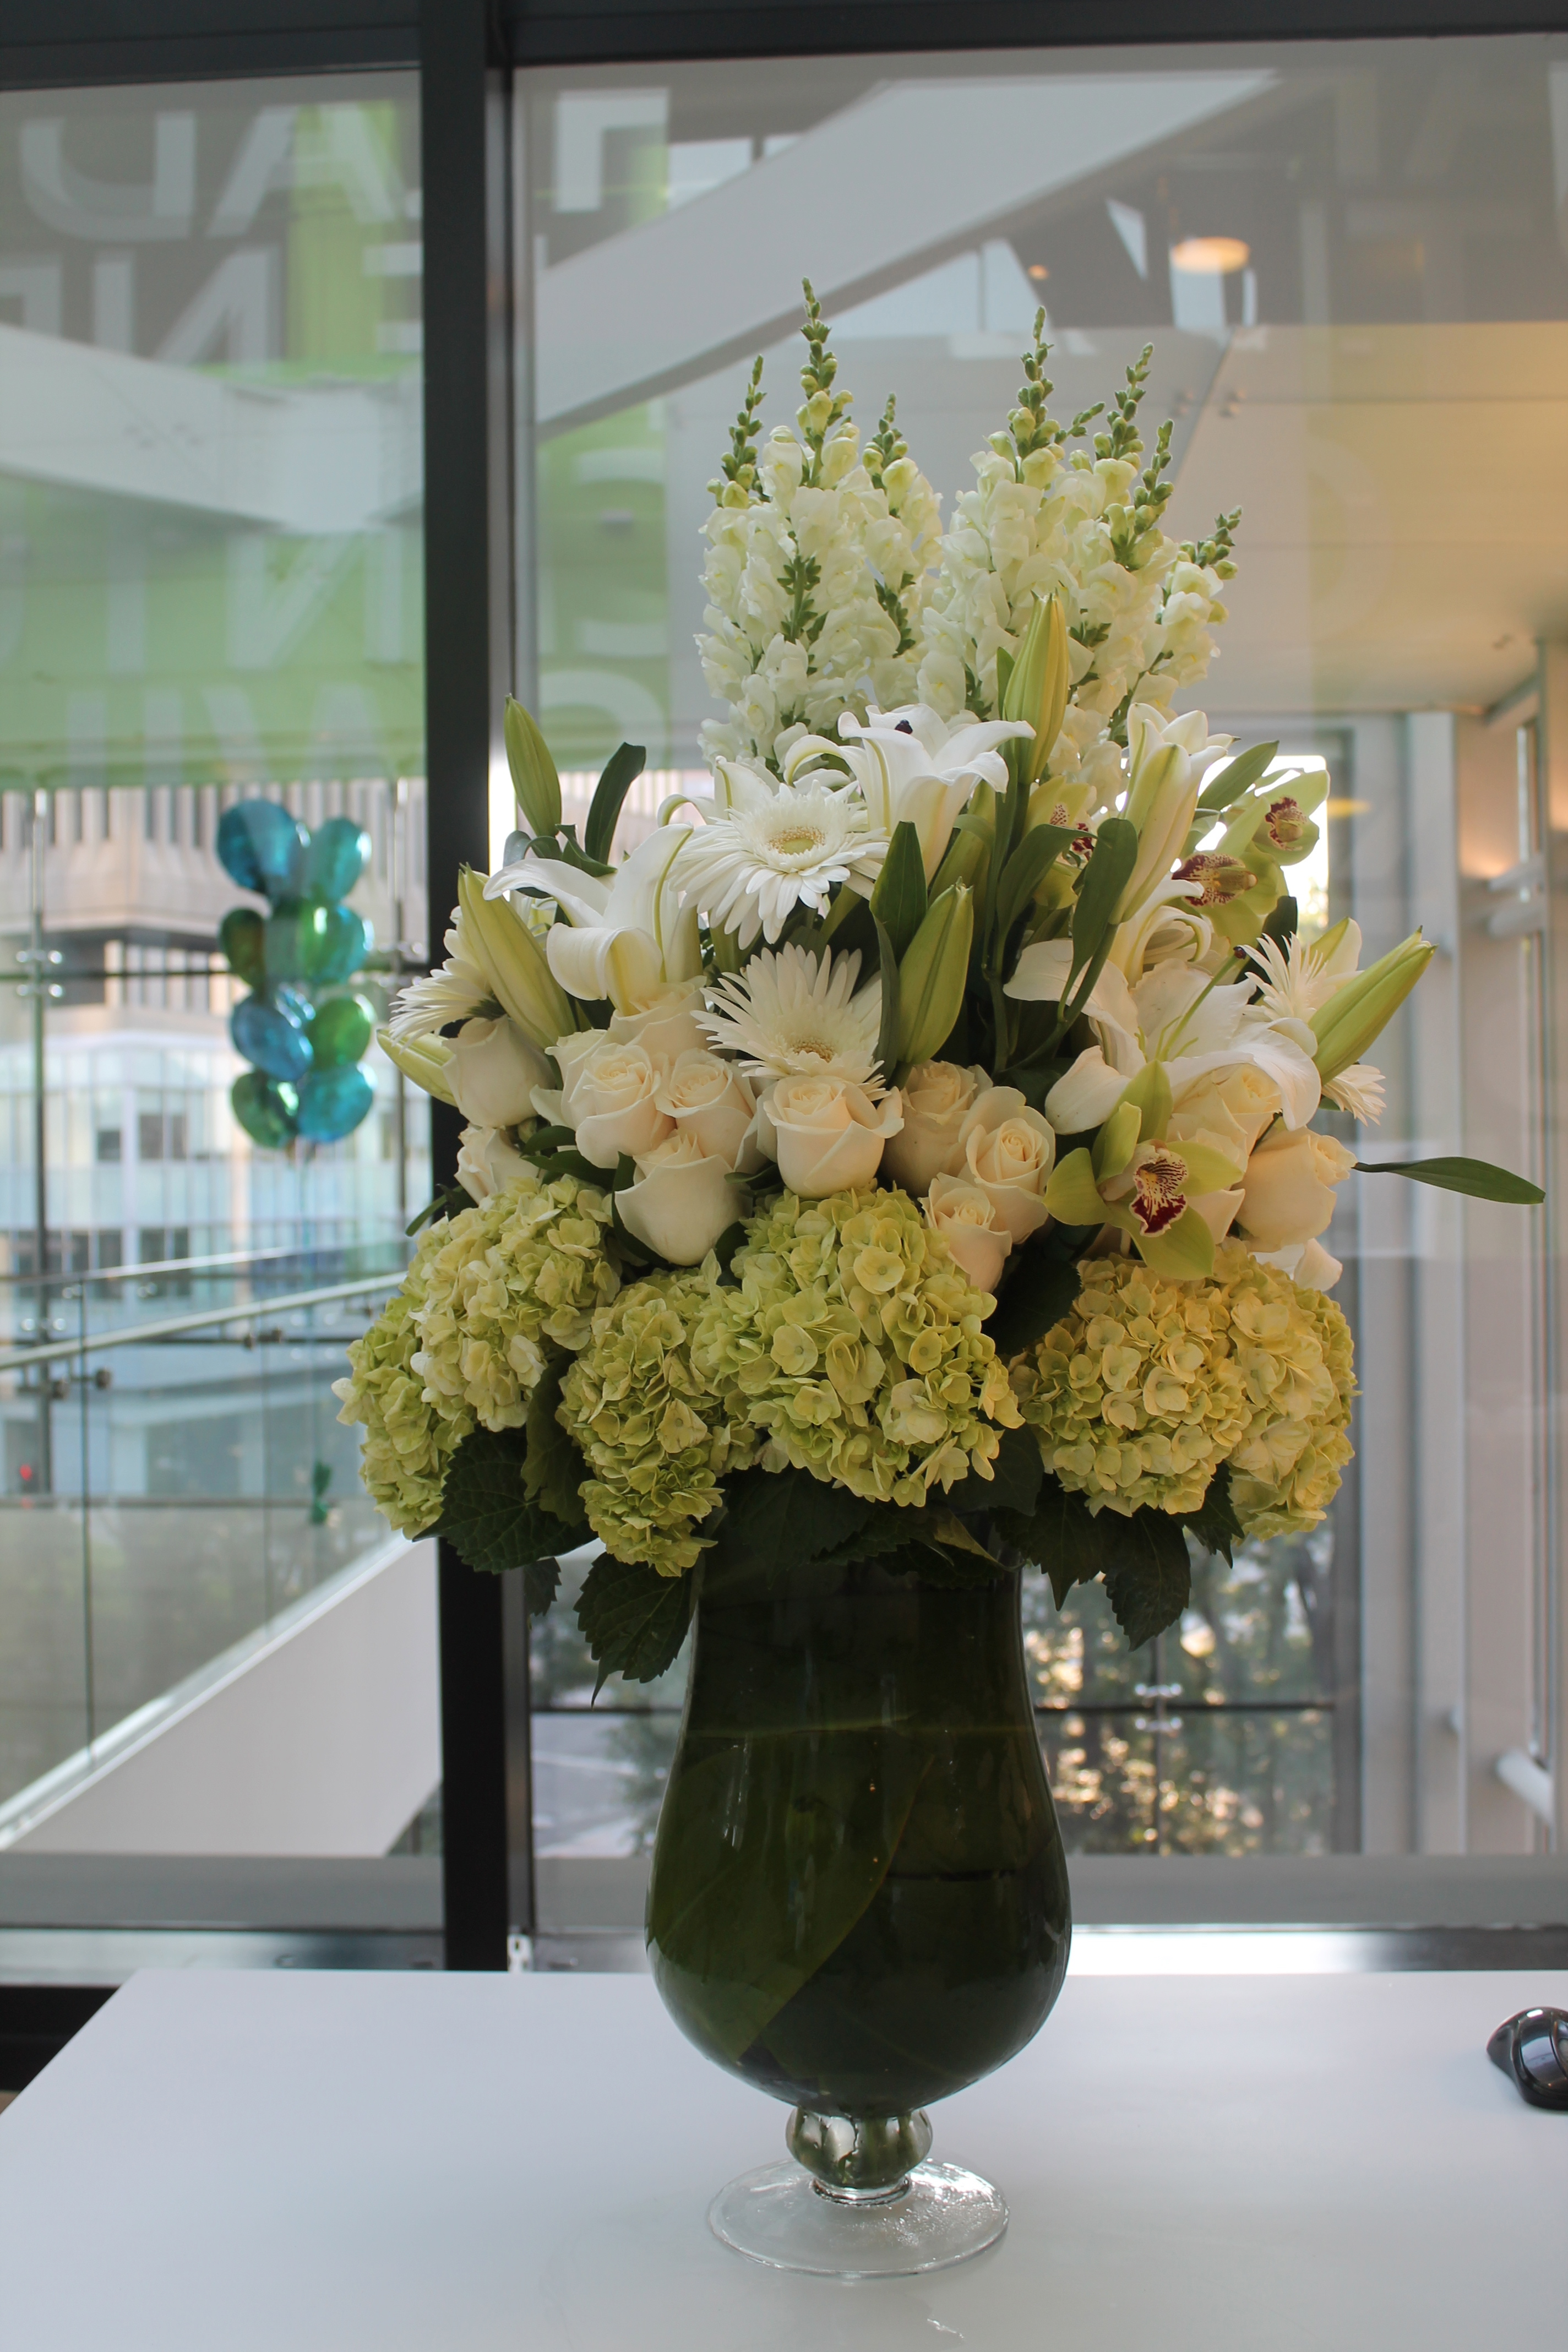 office floral arrangements late trend hotel lobby interiors flower extralarge arrangement for microsofts new office corporate flowers boston ma central square florist